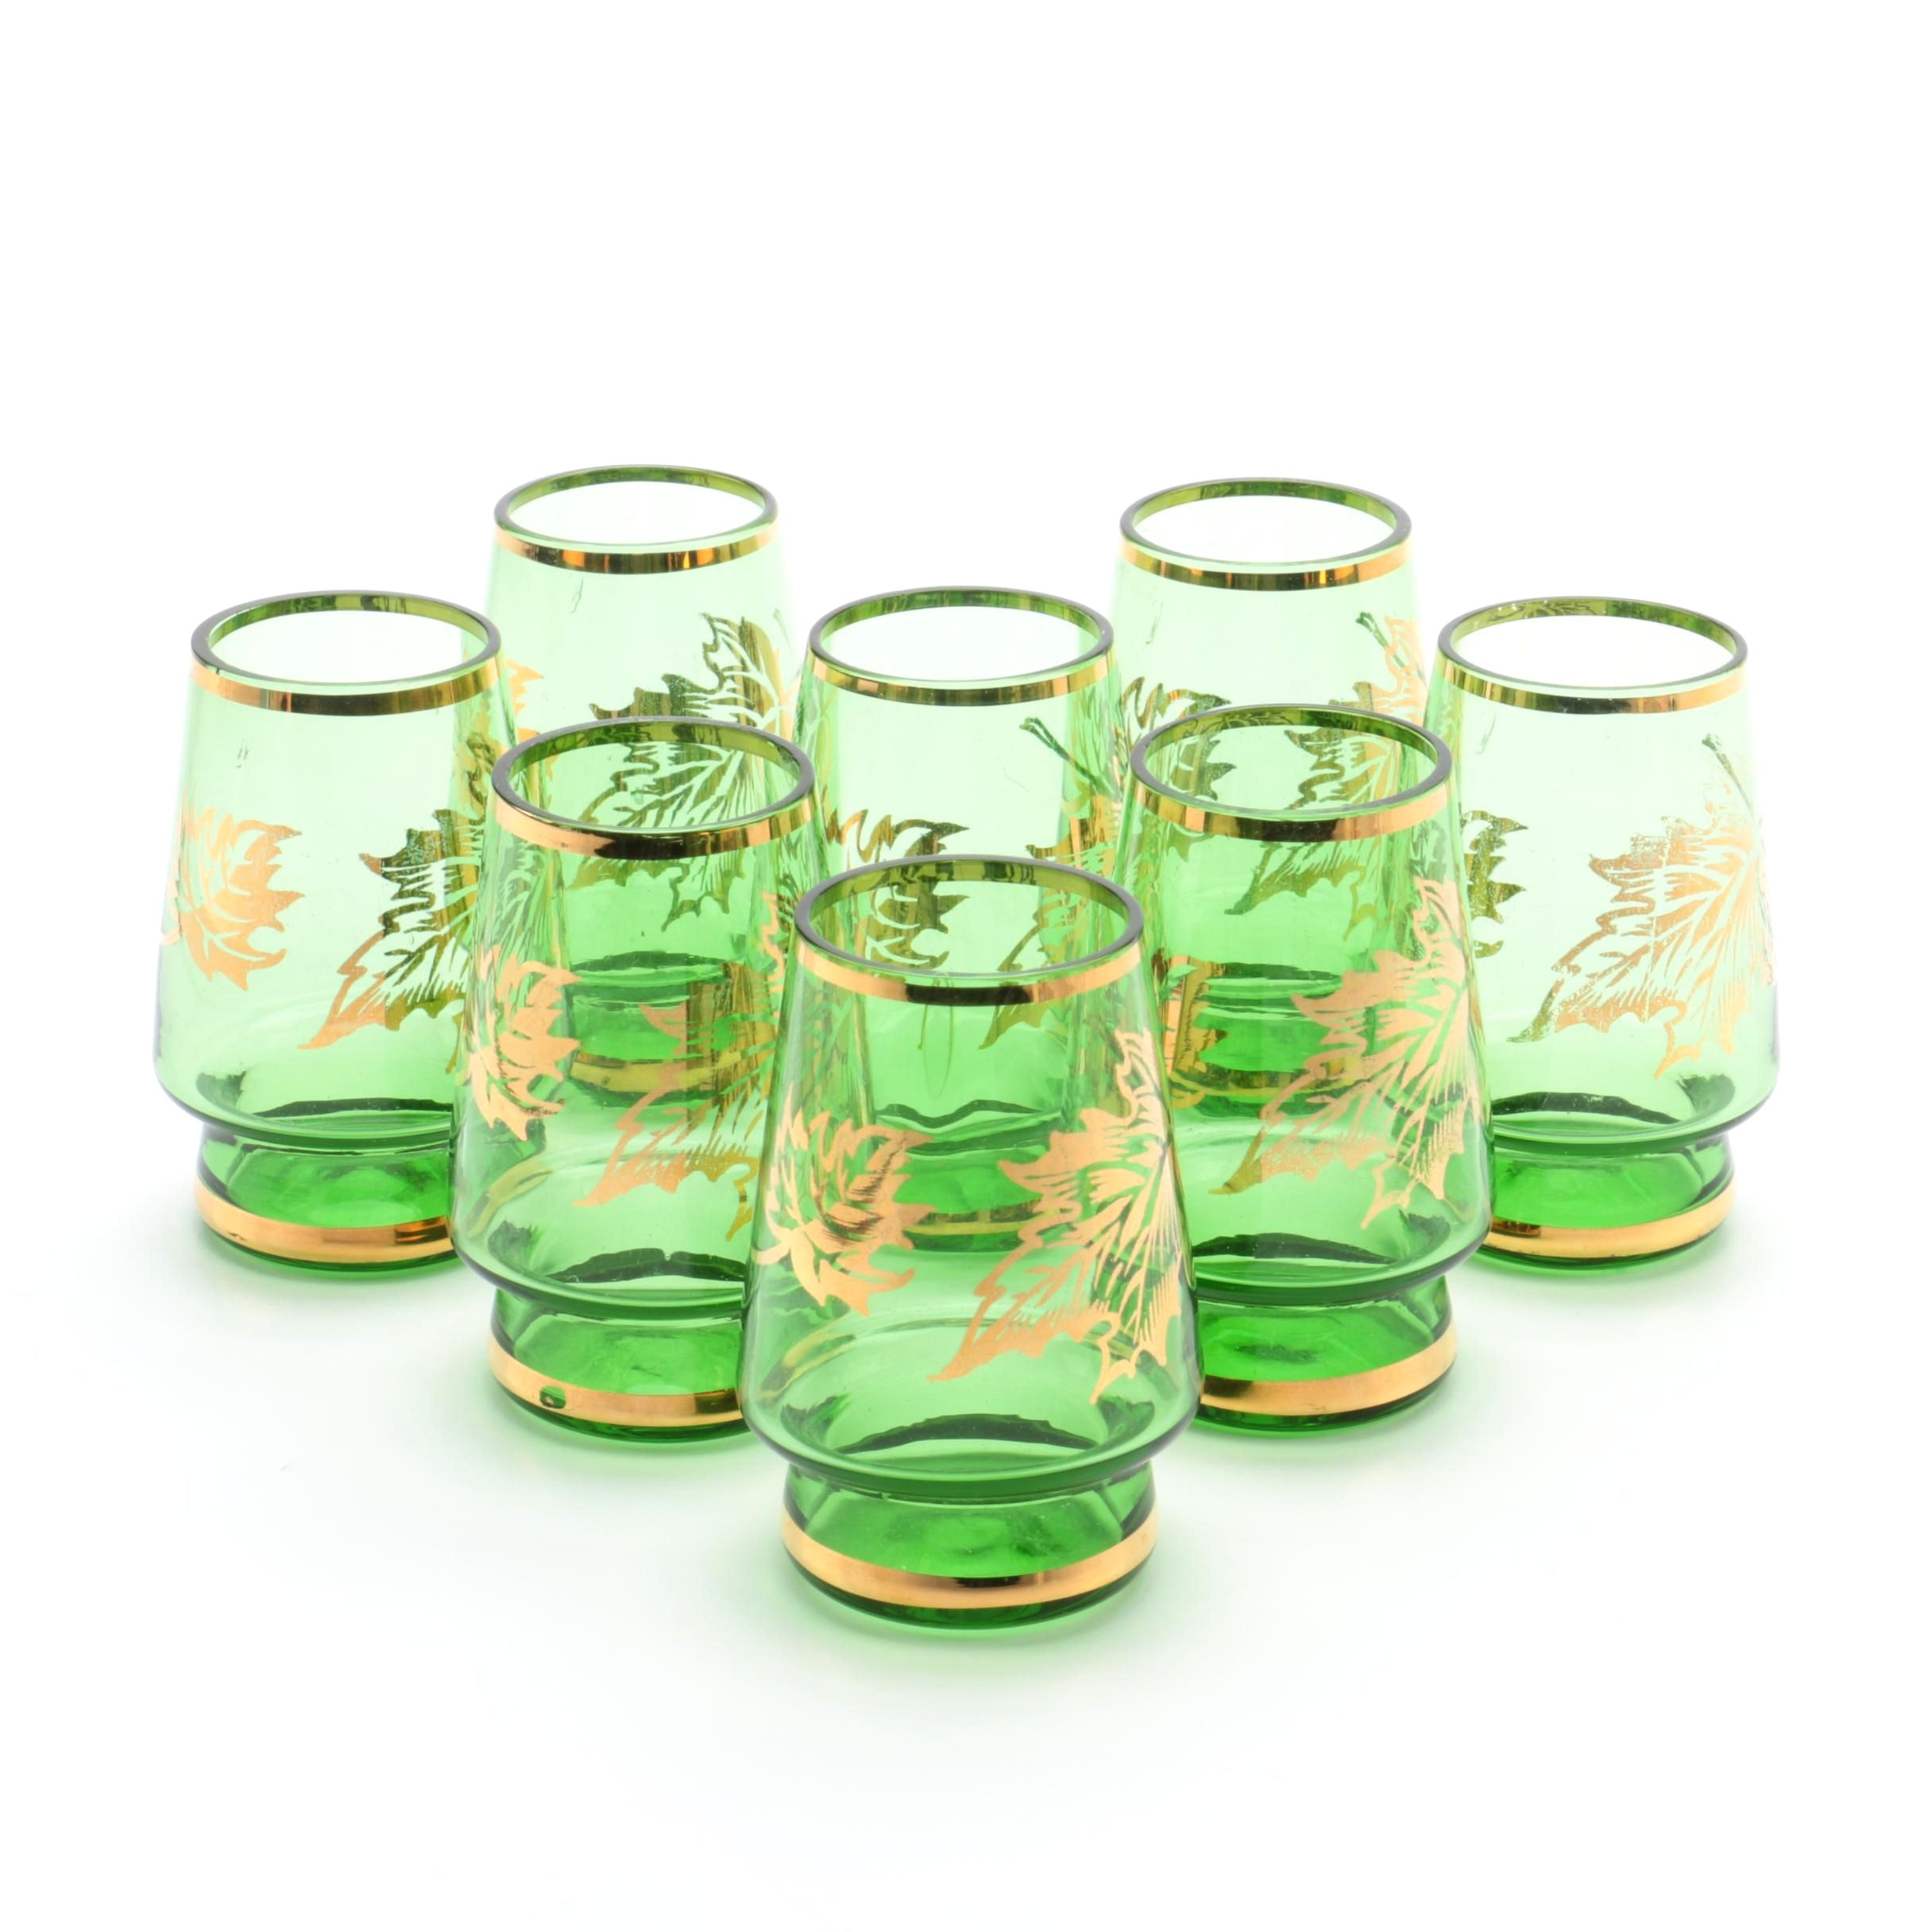 Vintage Green Glass Whiskey Shooters with Gold Leaf Design